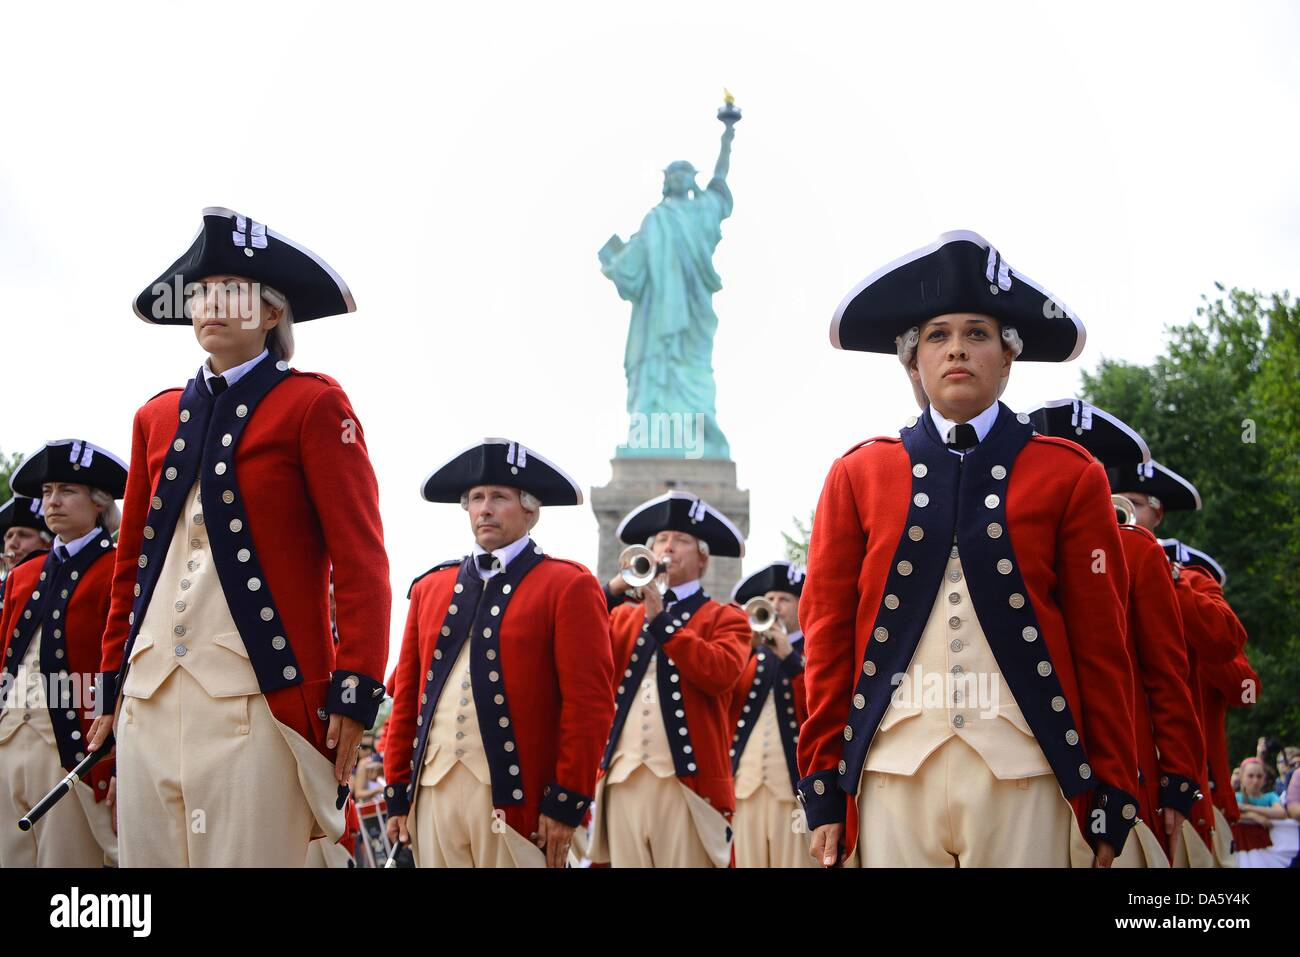 New York, USA. 4th July, 2013. Members from the Old Guard Fife and Drum Corps perform at the re-opening of the Statue - Stock Image